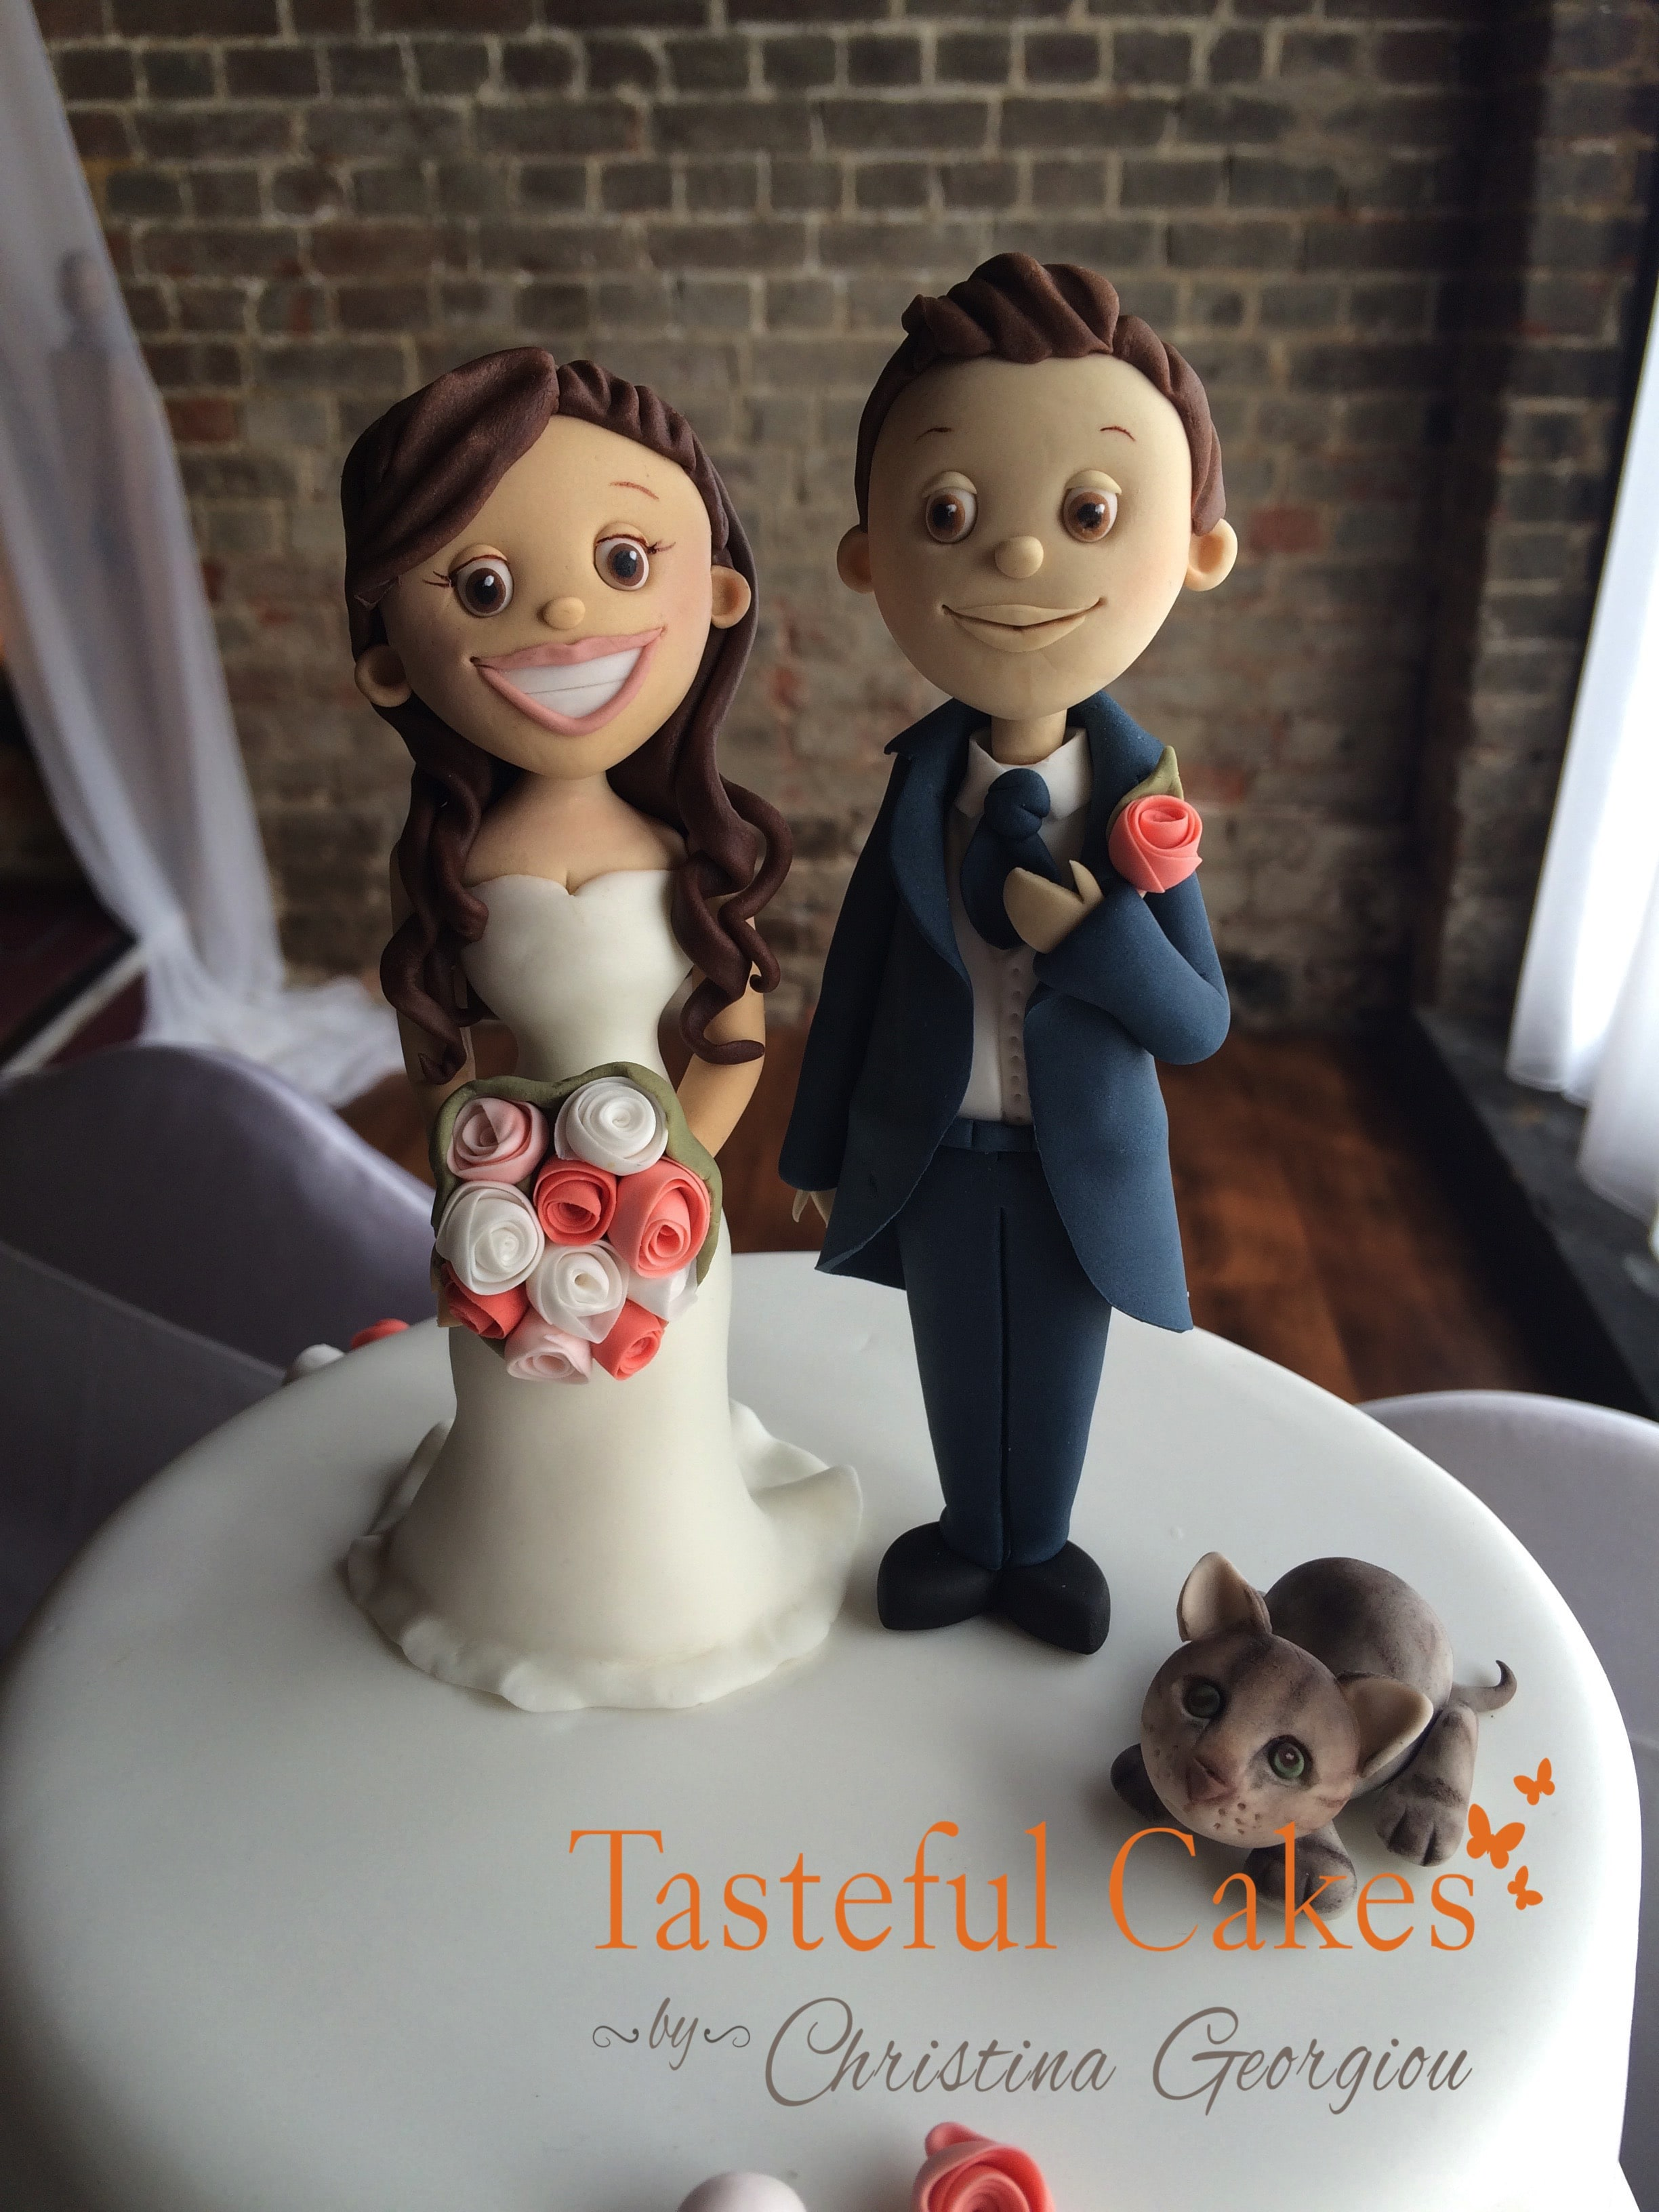 Cake Toppers Uk Bride And Groom : Tasteful Cakes By Christina Georgiou Bride and Groom ...